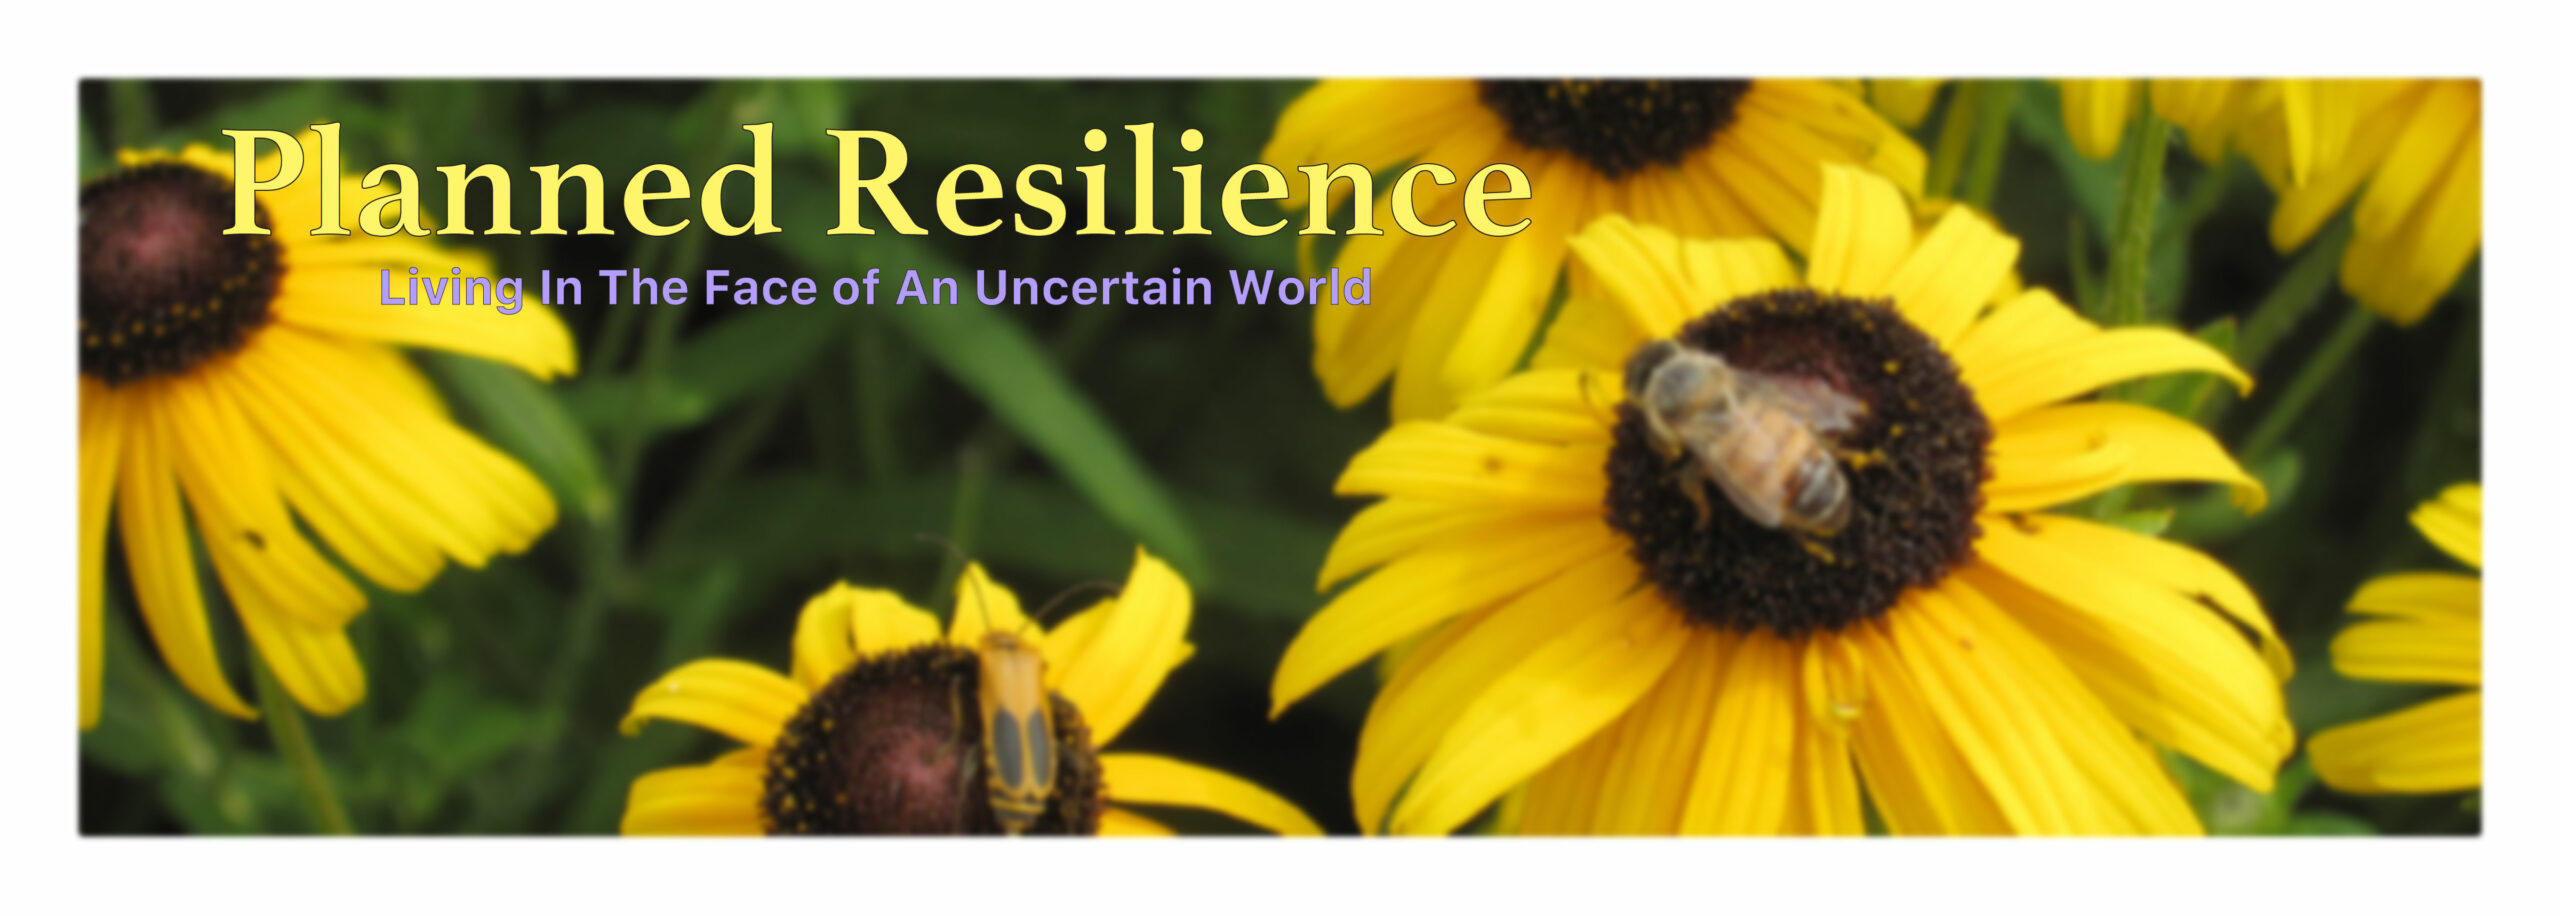 Planned Resilience